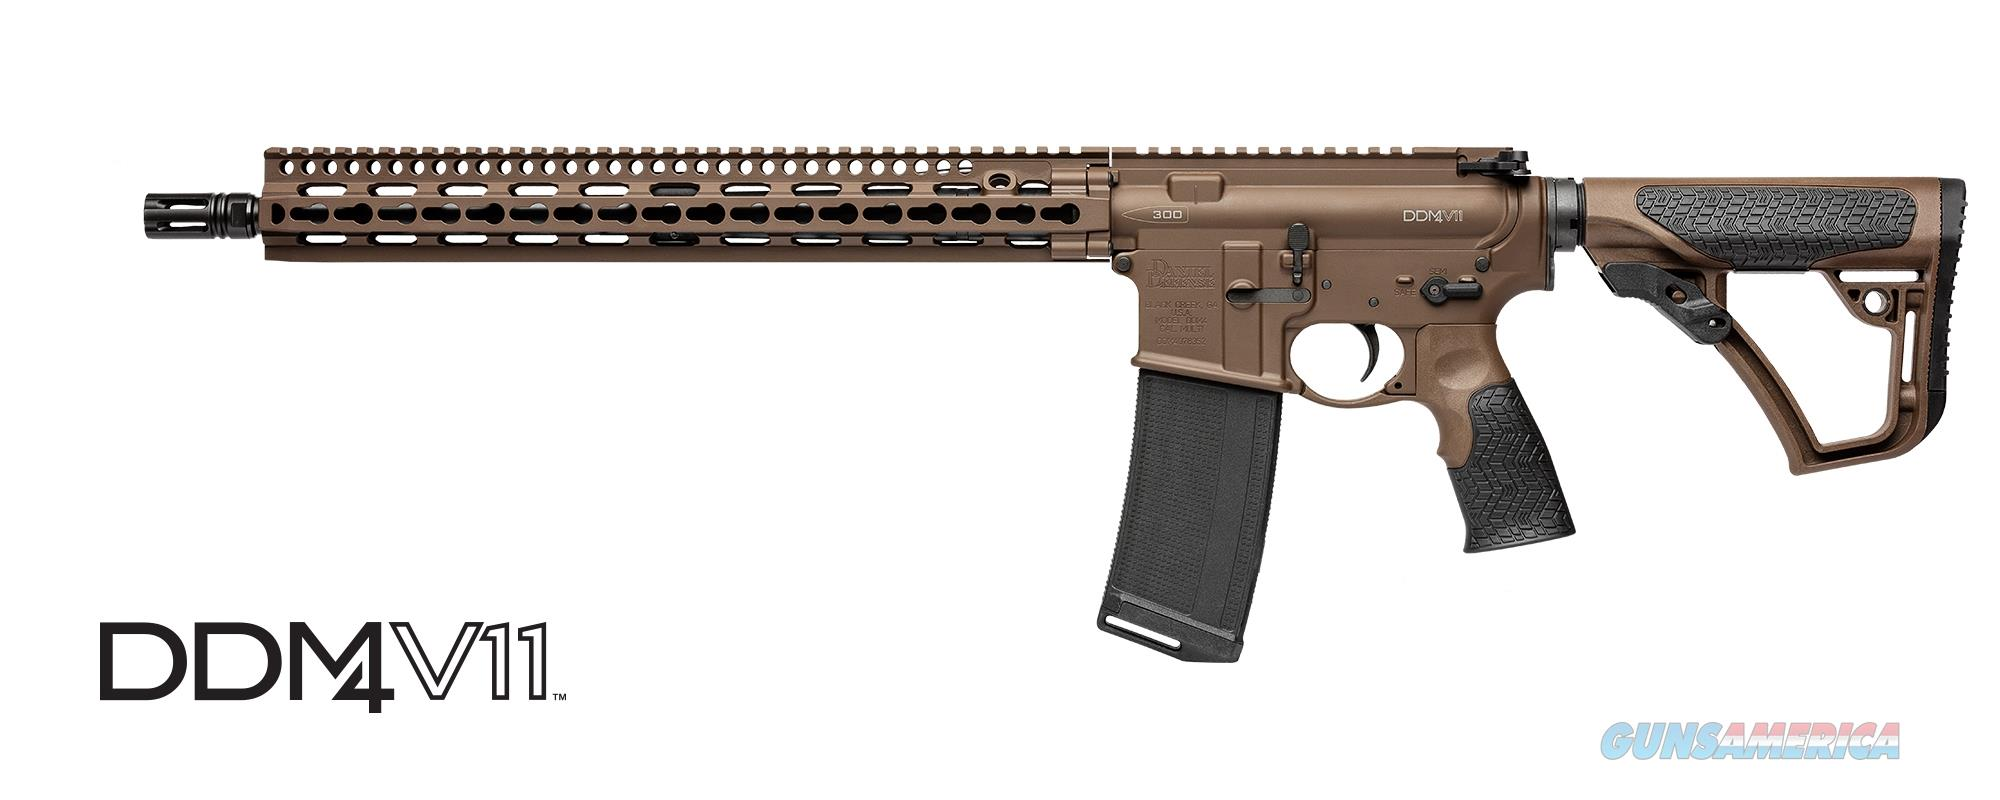 Daniel Defense DDM4V11 Mil Spec+ Cerakote 300 BLK 02-151-16191-047  Guns > Rifles > Daniel Defense > Complete Rifles